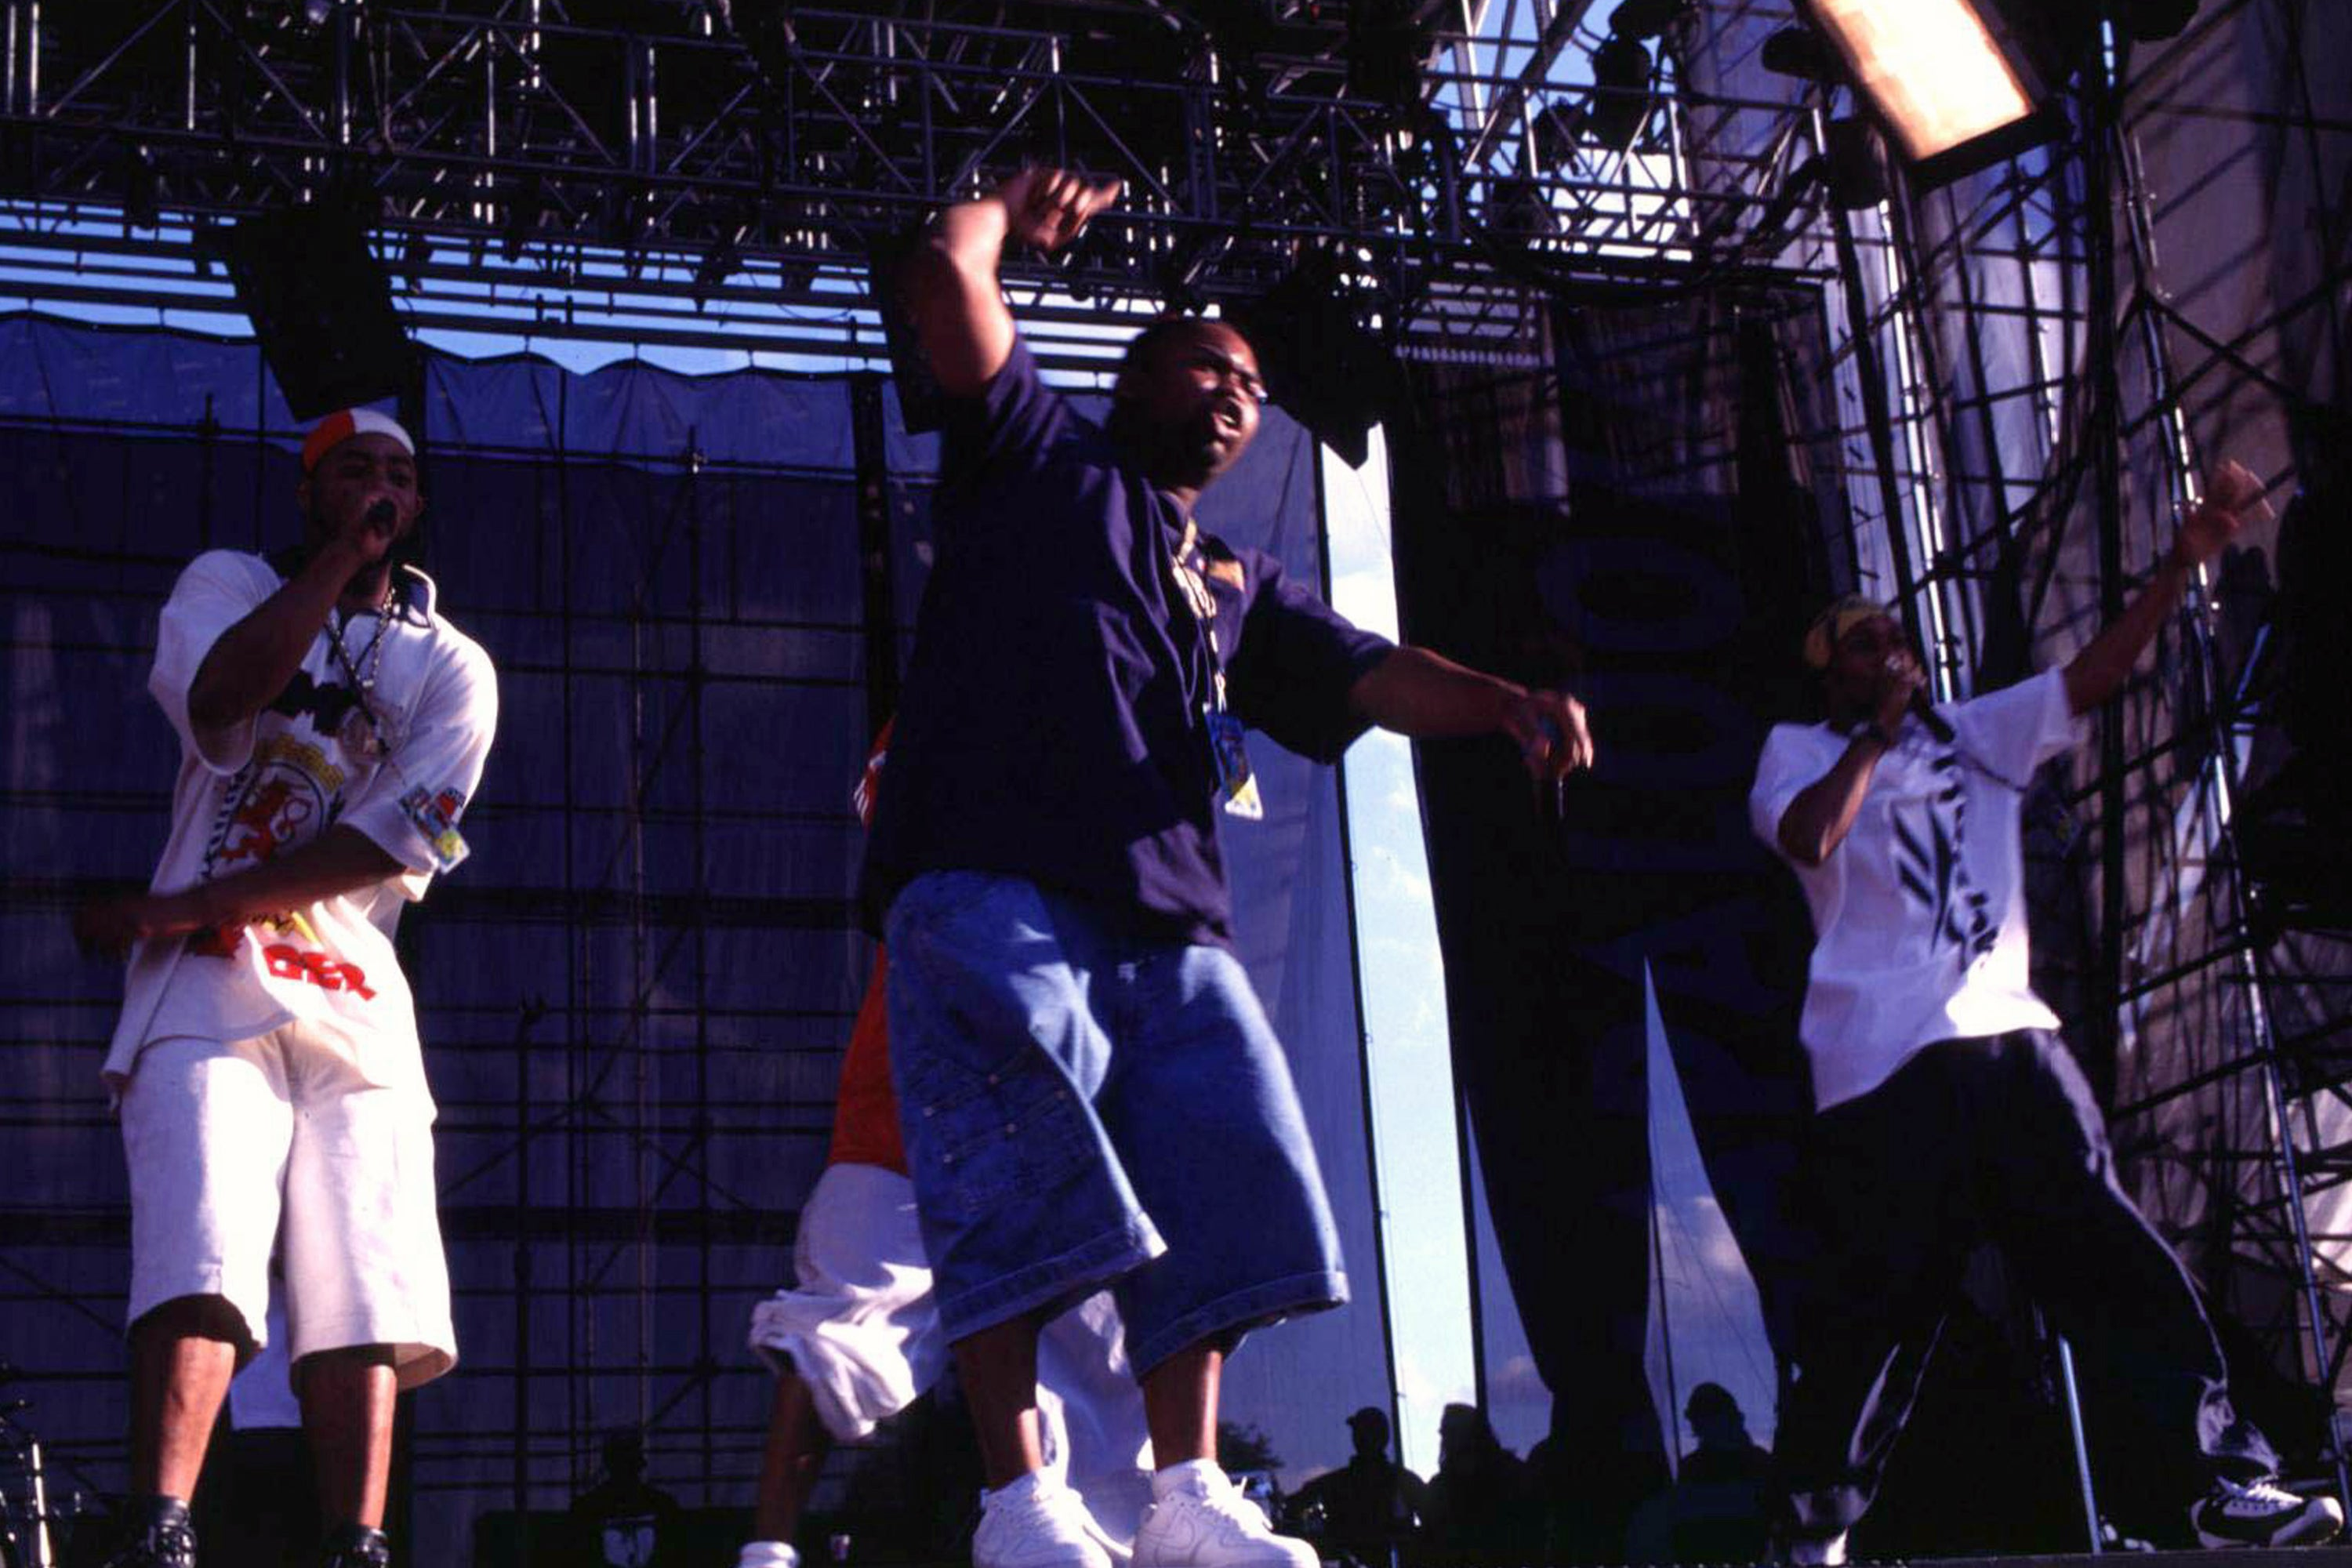 Wu-Tang Clan during Lollapalooza 1996 at Downing Stadium, Randall's Island in New York City at Downing Stadium, Randall's Island in New York, New York, United States. (Photo by Steve Eichner/WireImage)